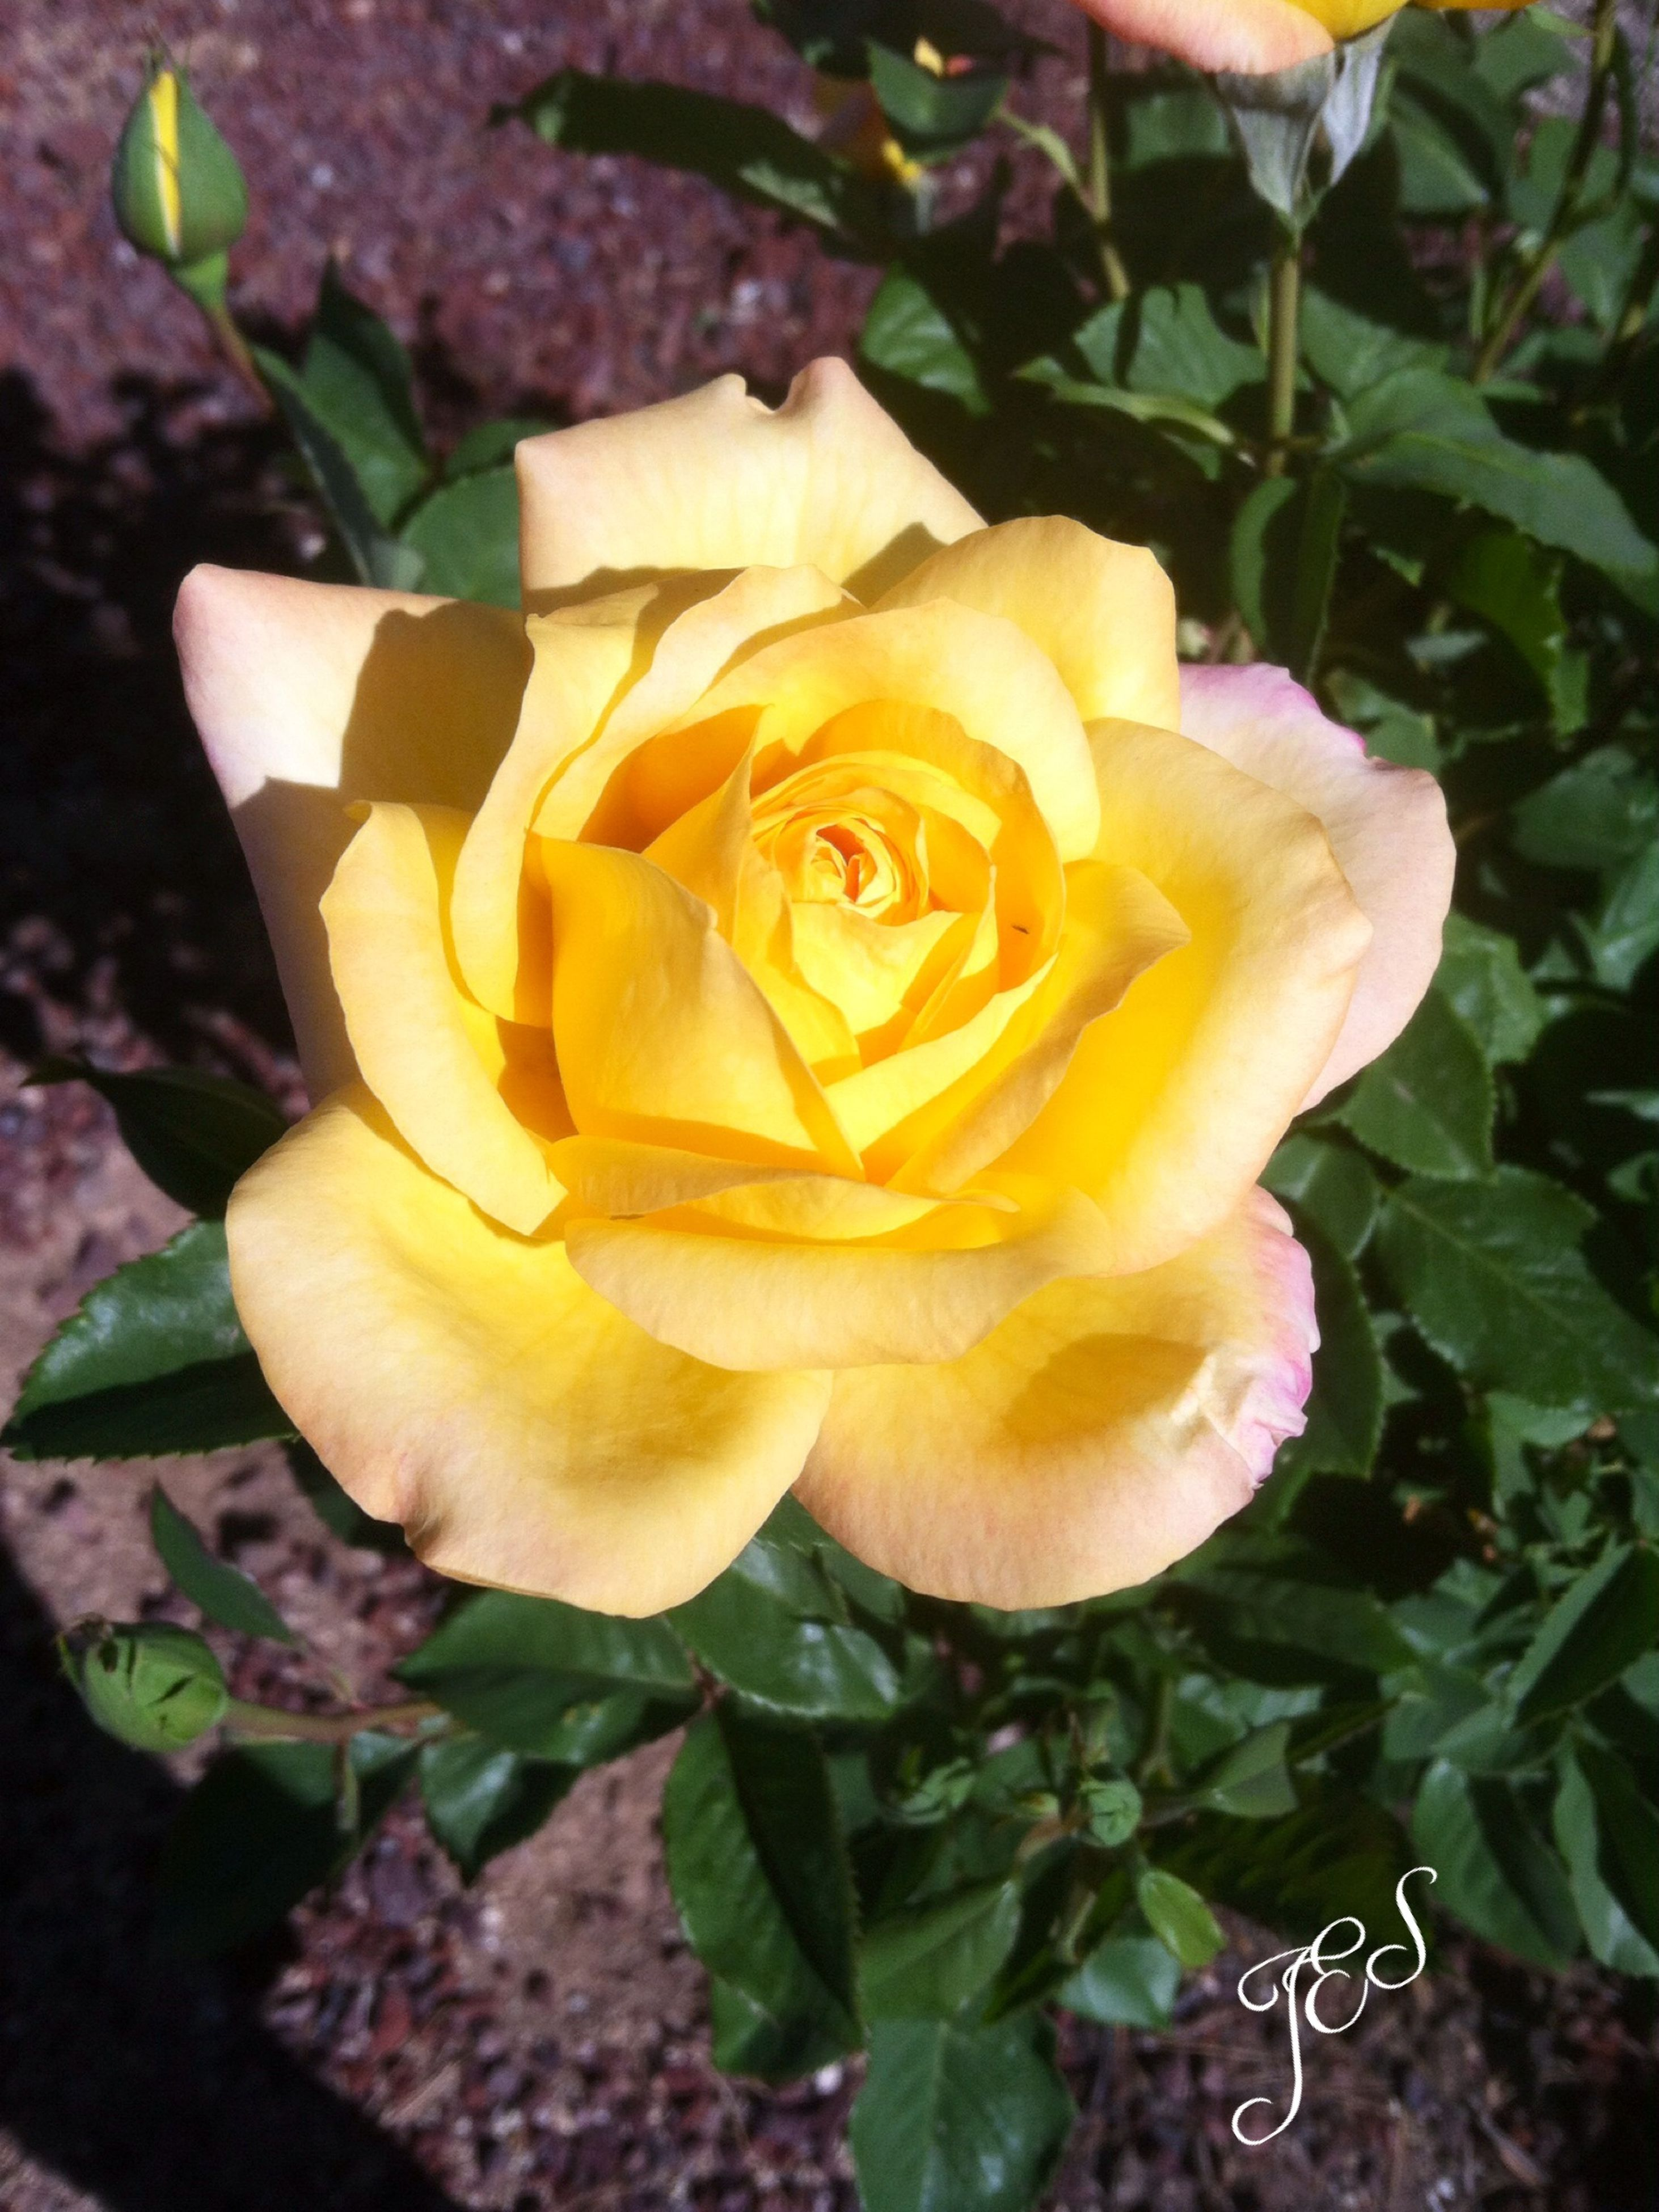 flower, petal, flower head, freshness, fragility, rose - flower, close-up, growth, beauty in nature, plant, nature, leaf, single flower, blooming, high angle view, rose, yellow, focus on foreground, indoors, no people